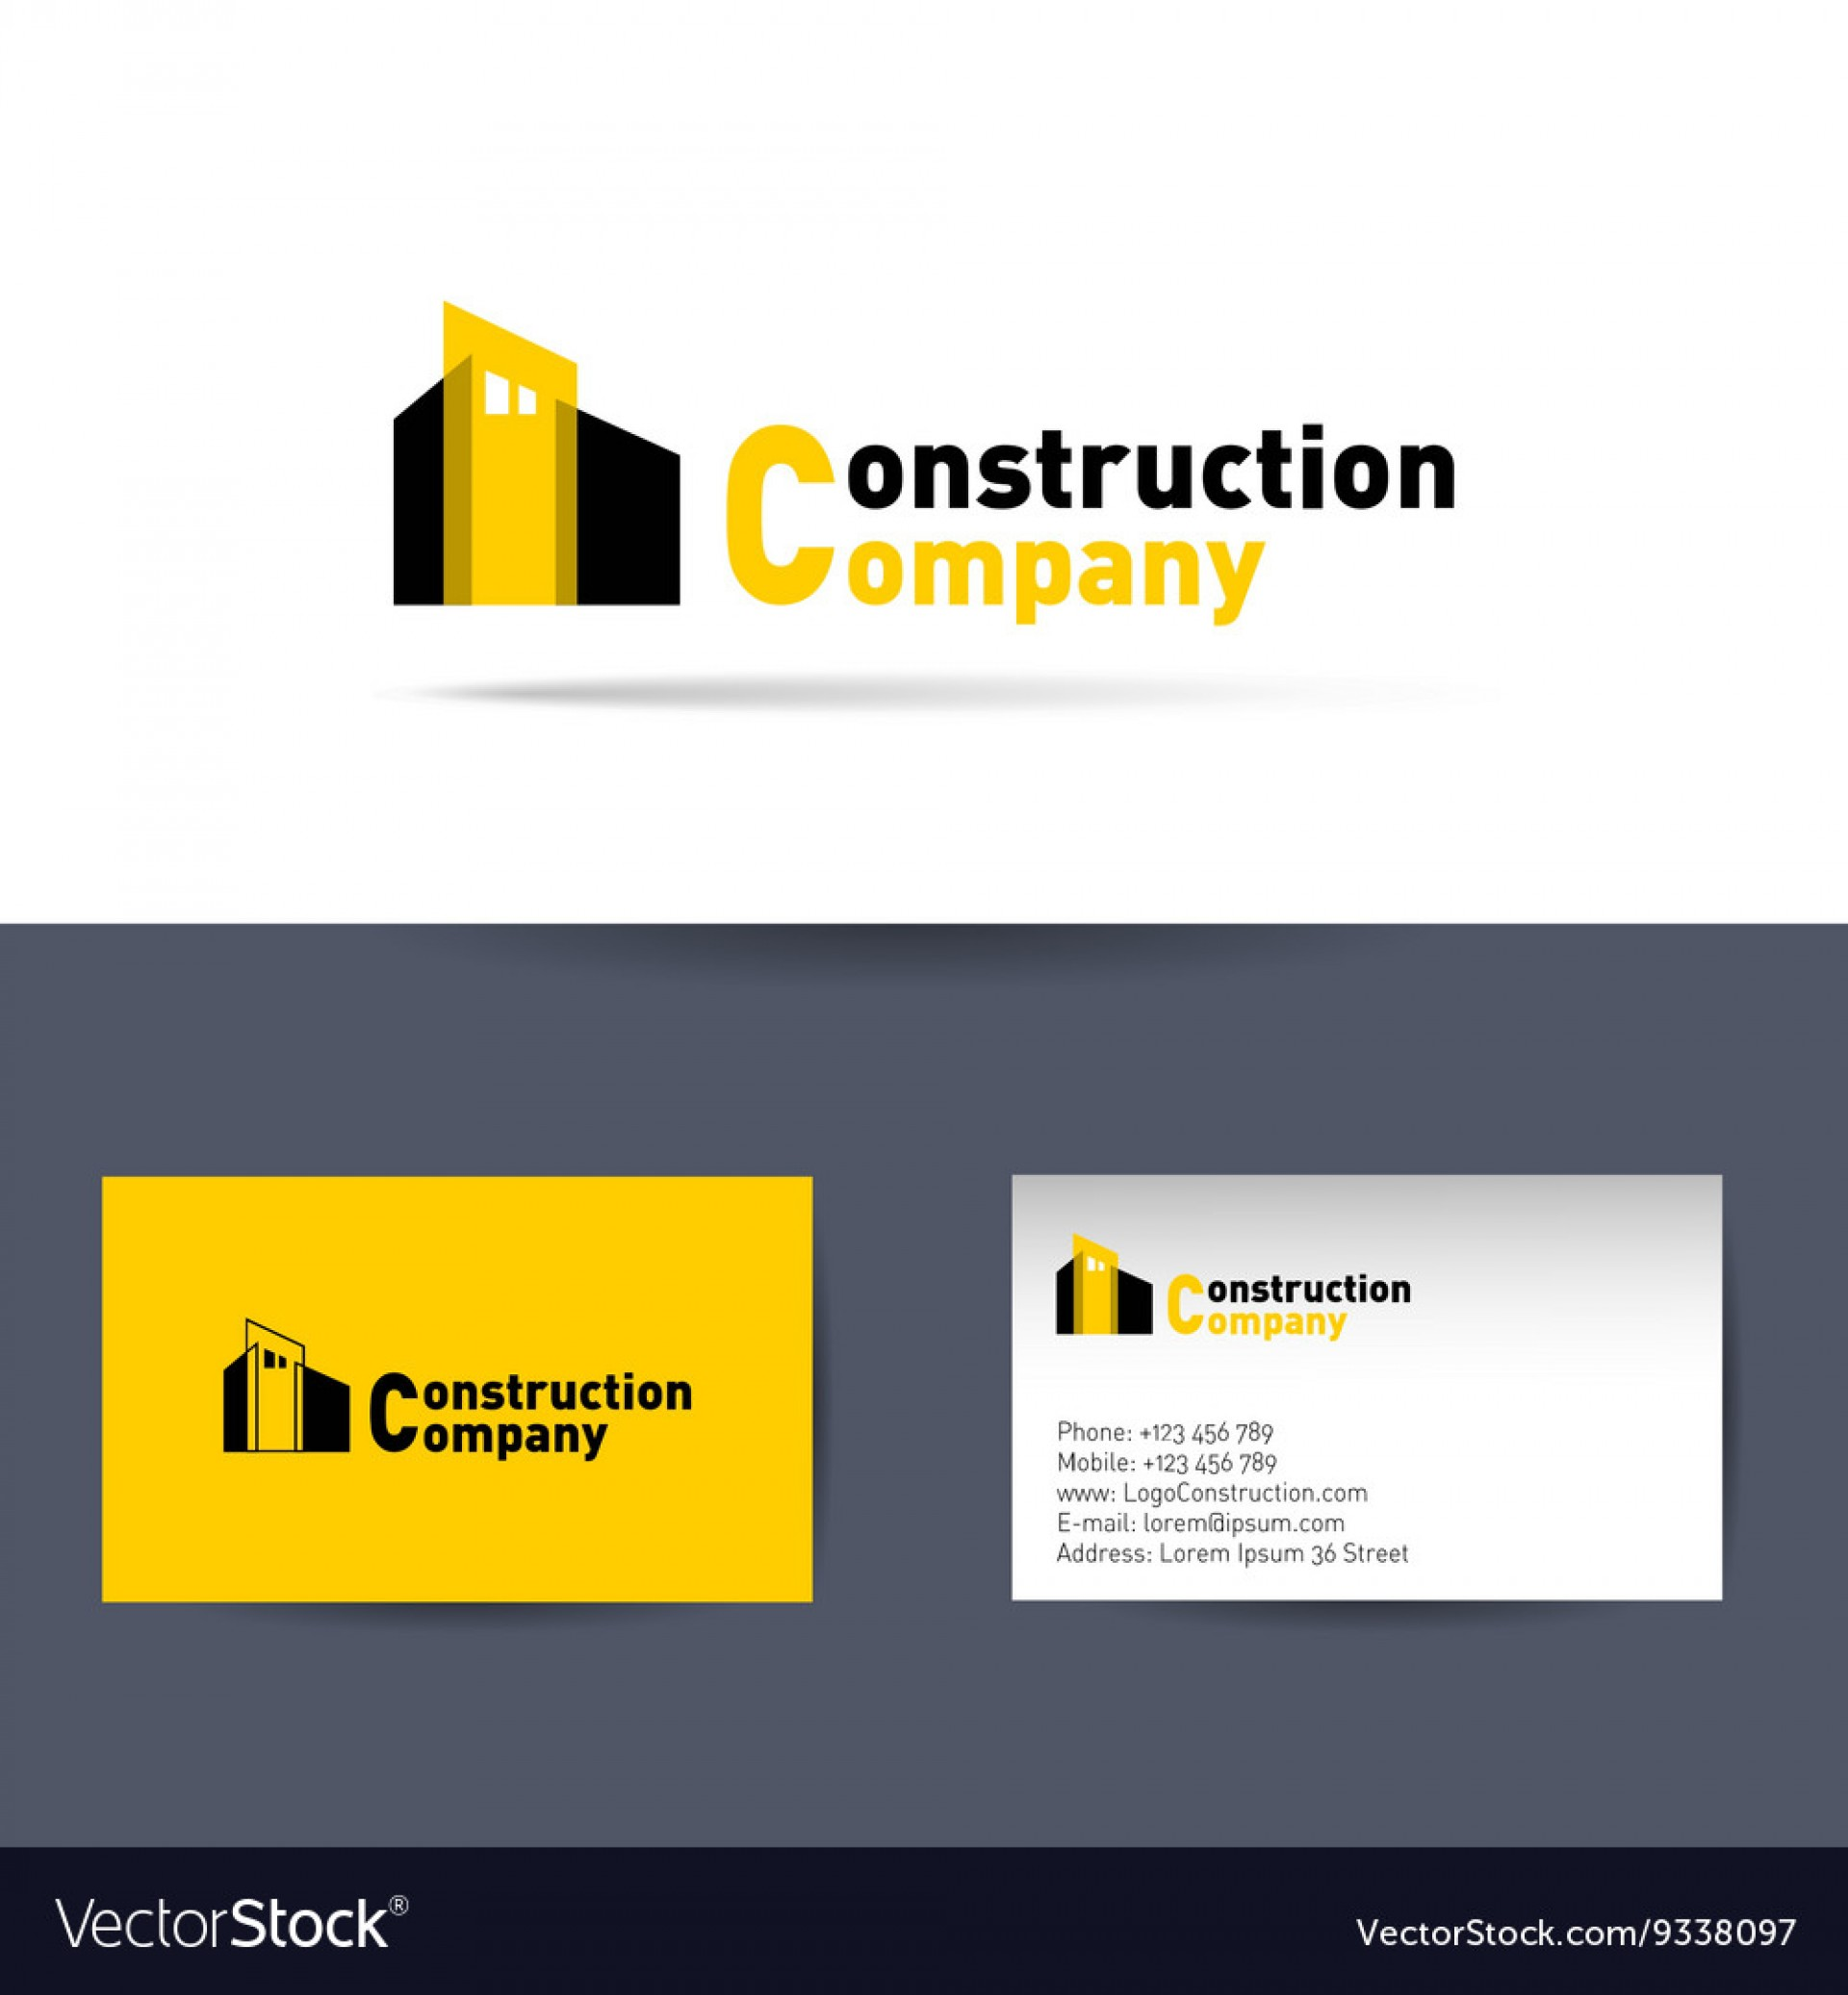 007 Awful Construction Busines Card Template Idea  Templates Visiting Company Format Design Psd1920